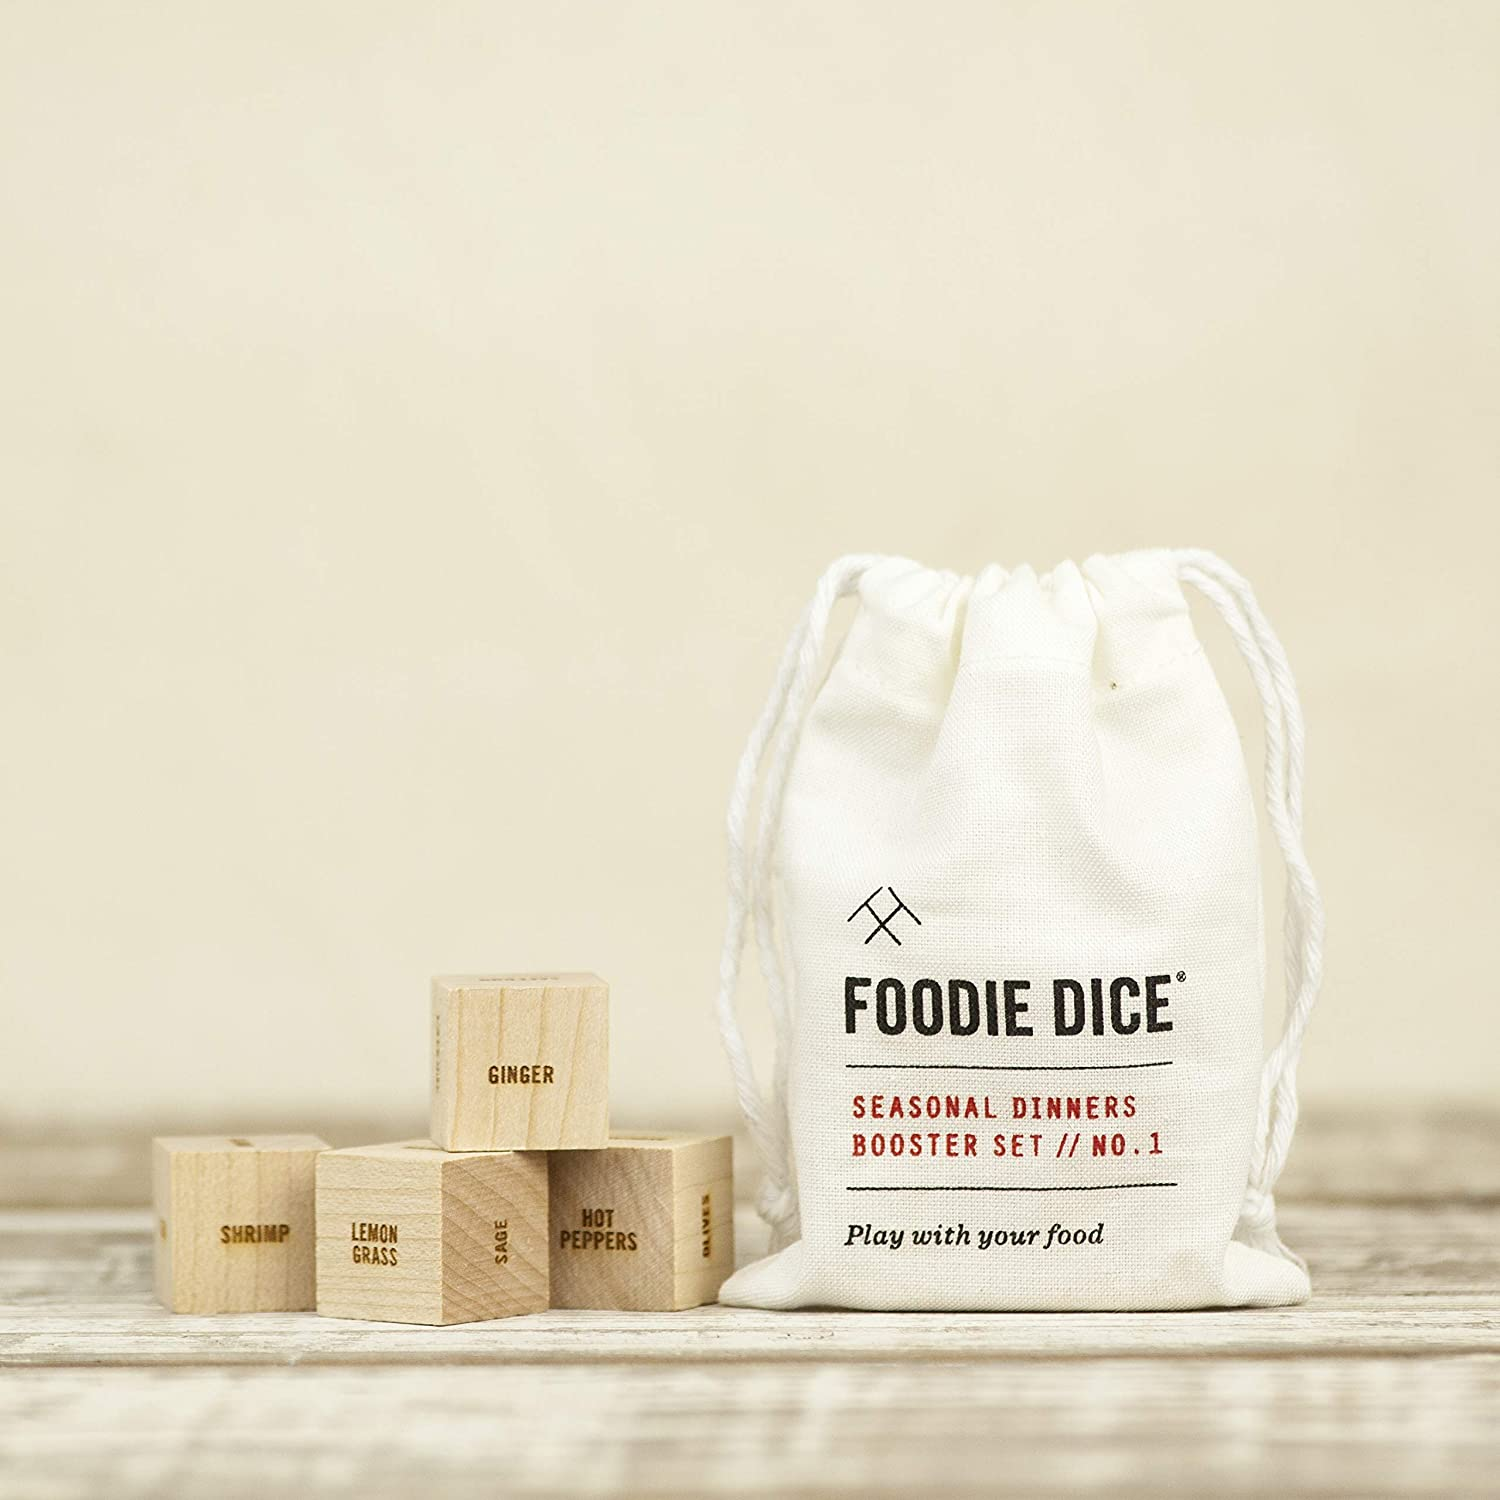 Foodie Dice - Seasonal Dinners Booster set